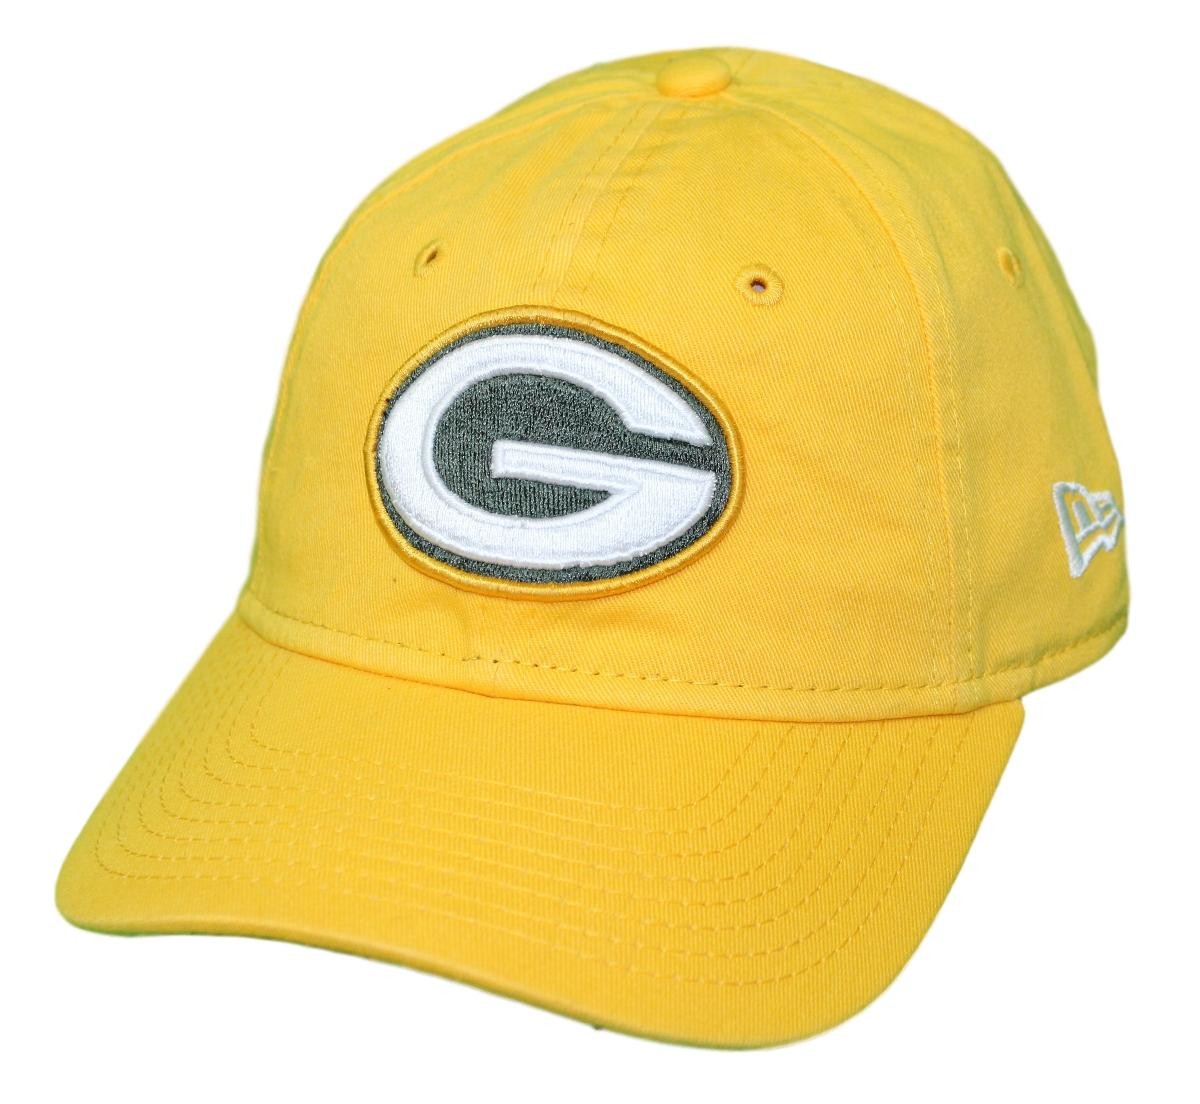 53d4b7f6d Details about Green Bay Packers New Era Youth 9Twenty